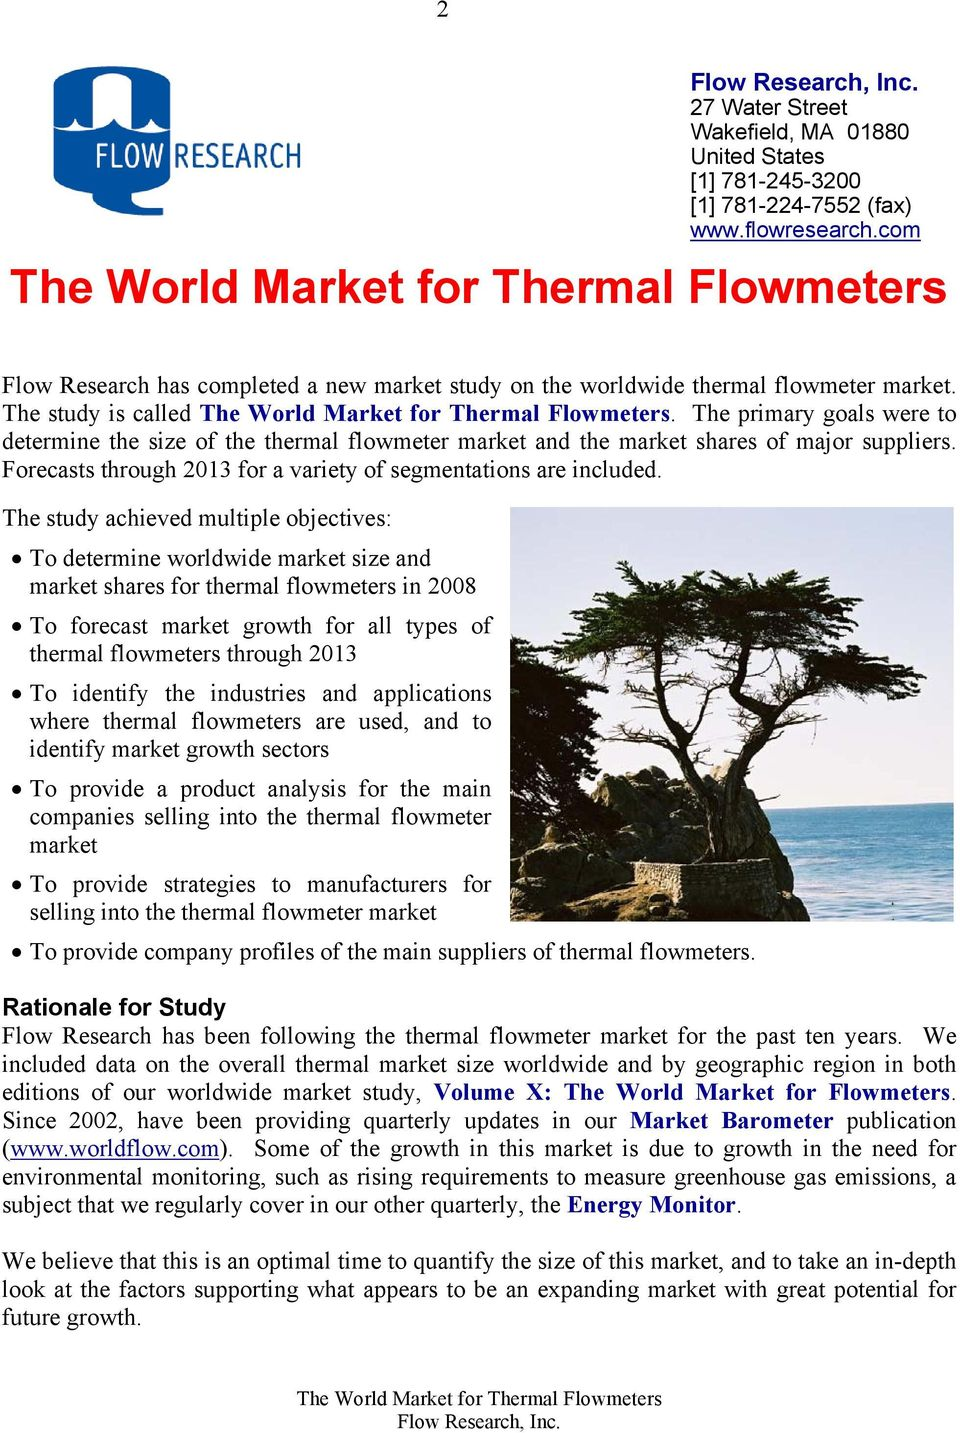 The primary goals were to determine the size of the thermal flowmeter market and the market shares of major suppliers. Forecasts through 2013 for a variety of segmentations are included.